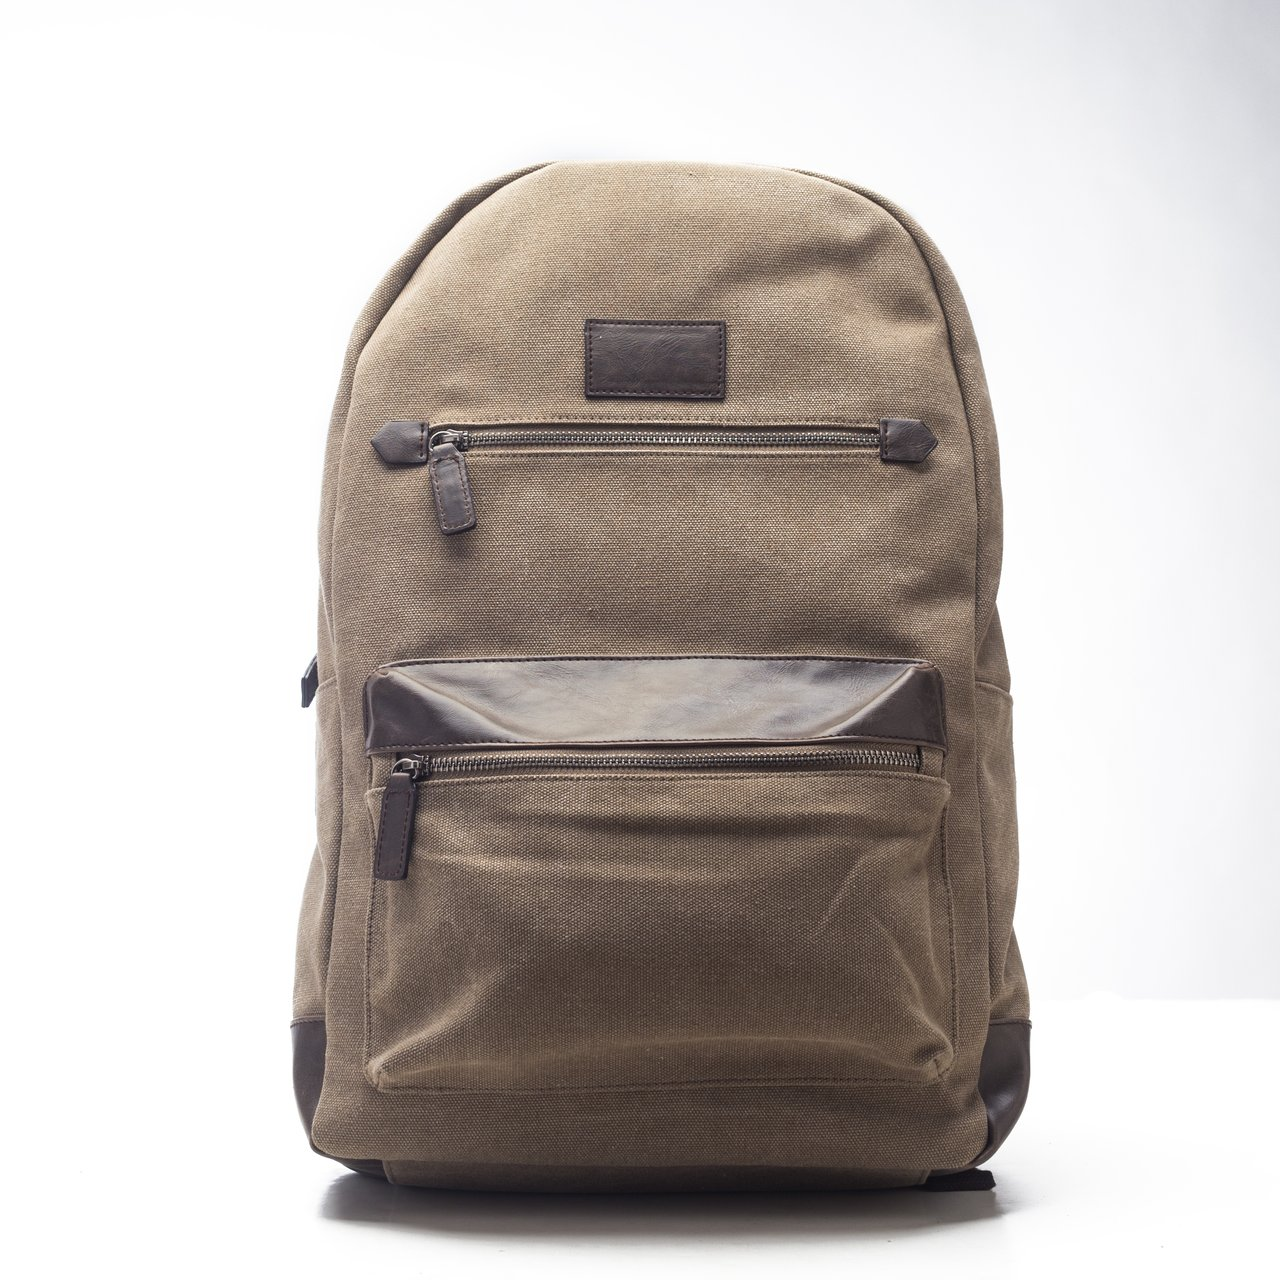 Excursion Backpack in Khaki